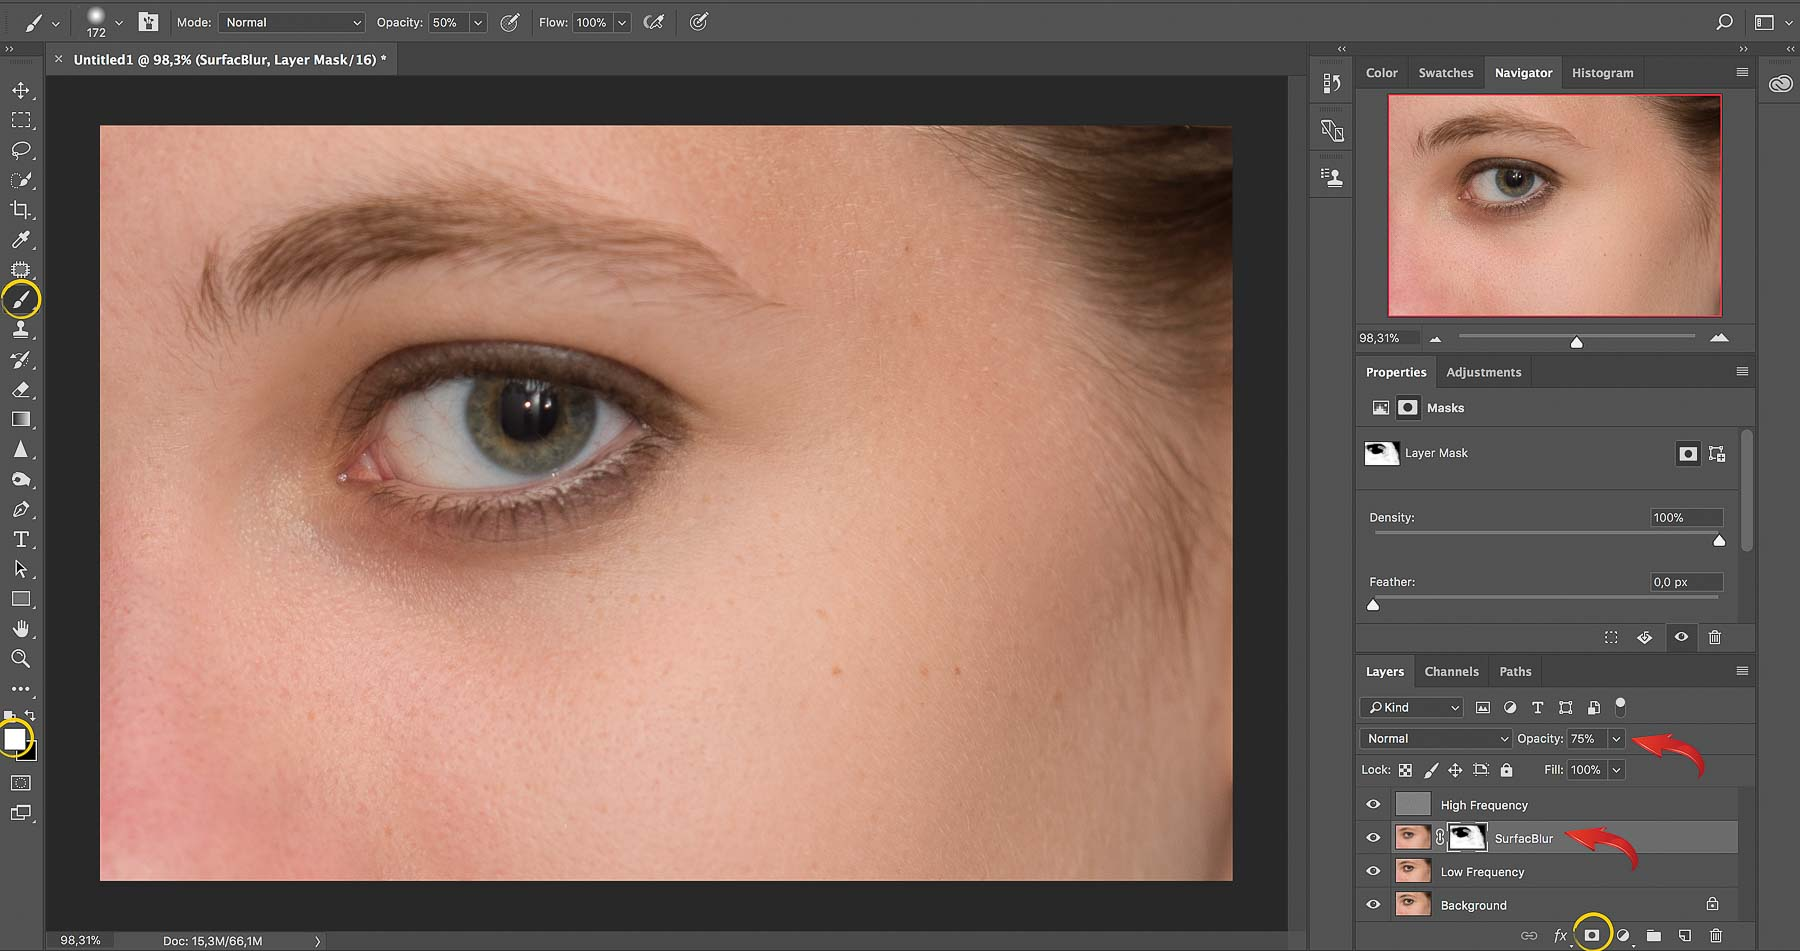 Surface Blur | Frequency Separation | Photoshop Skin Retouching • Portrait Retouching Workflow